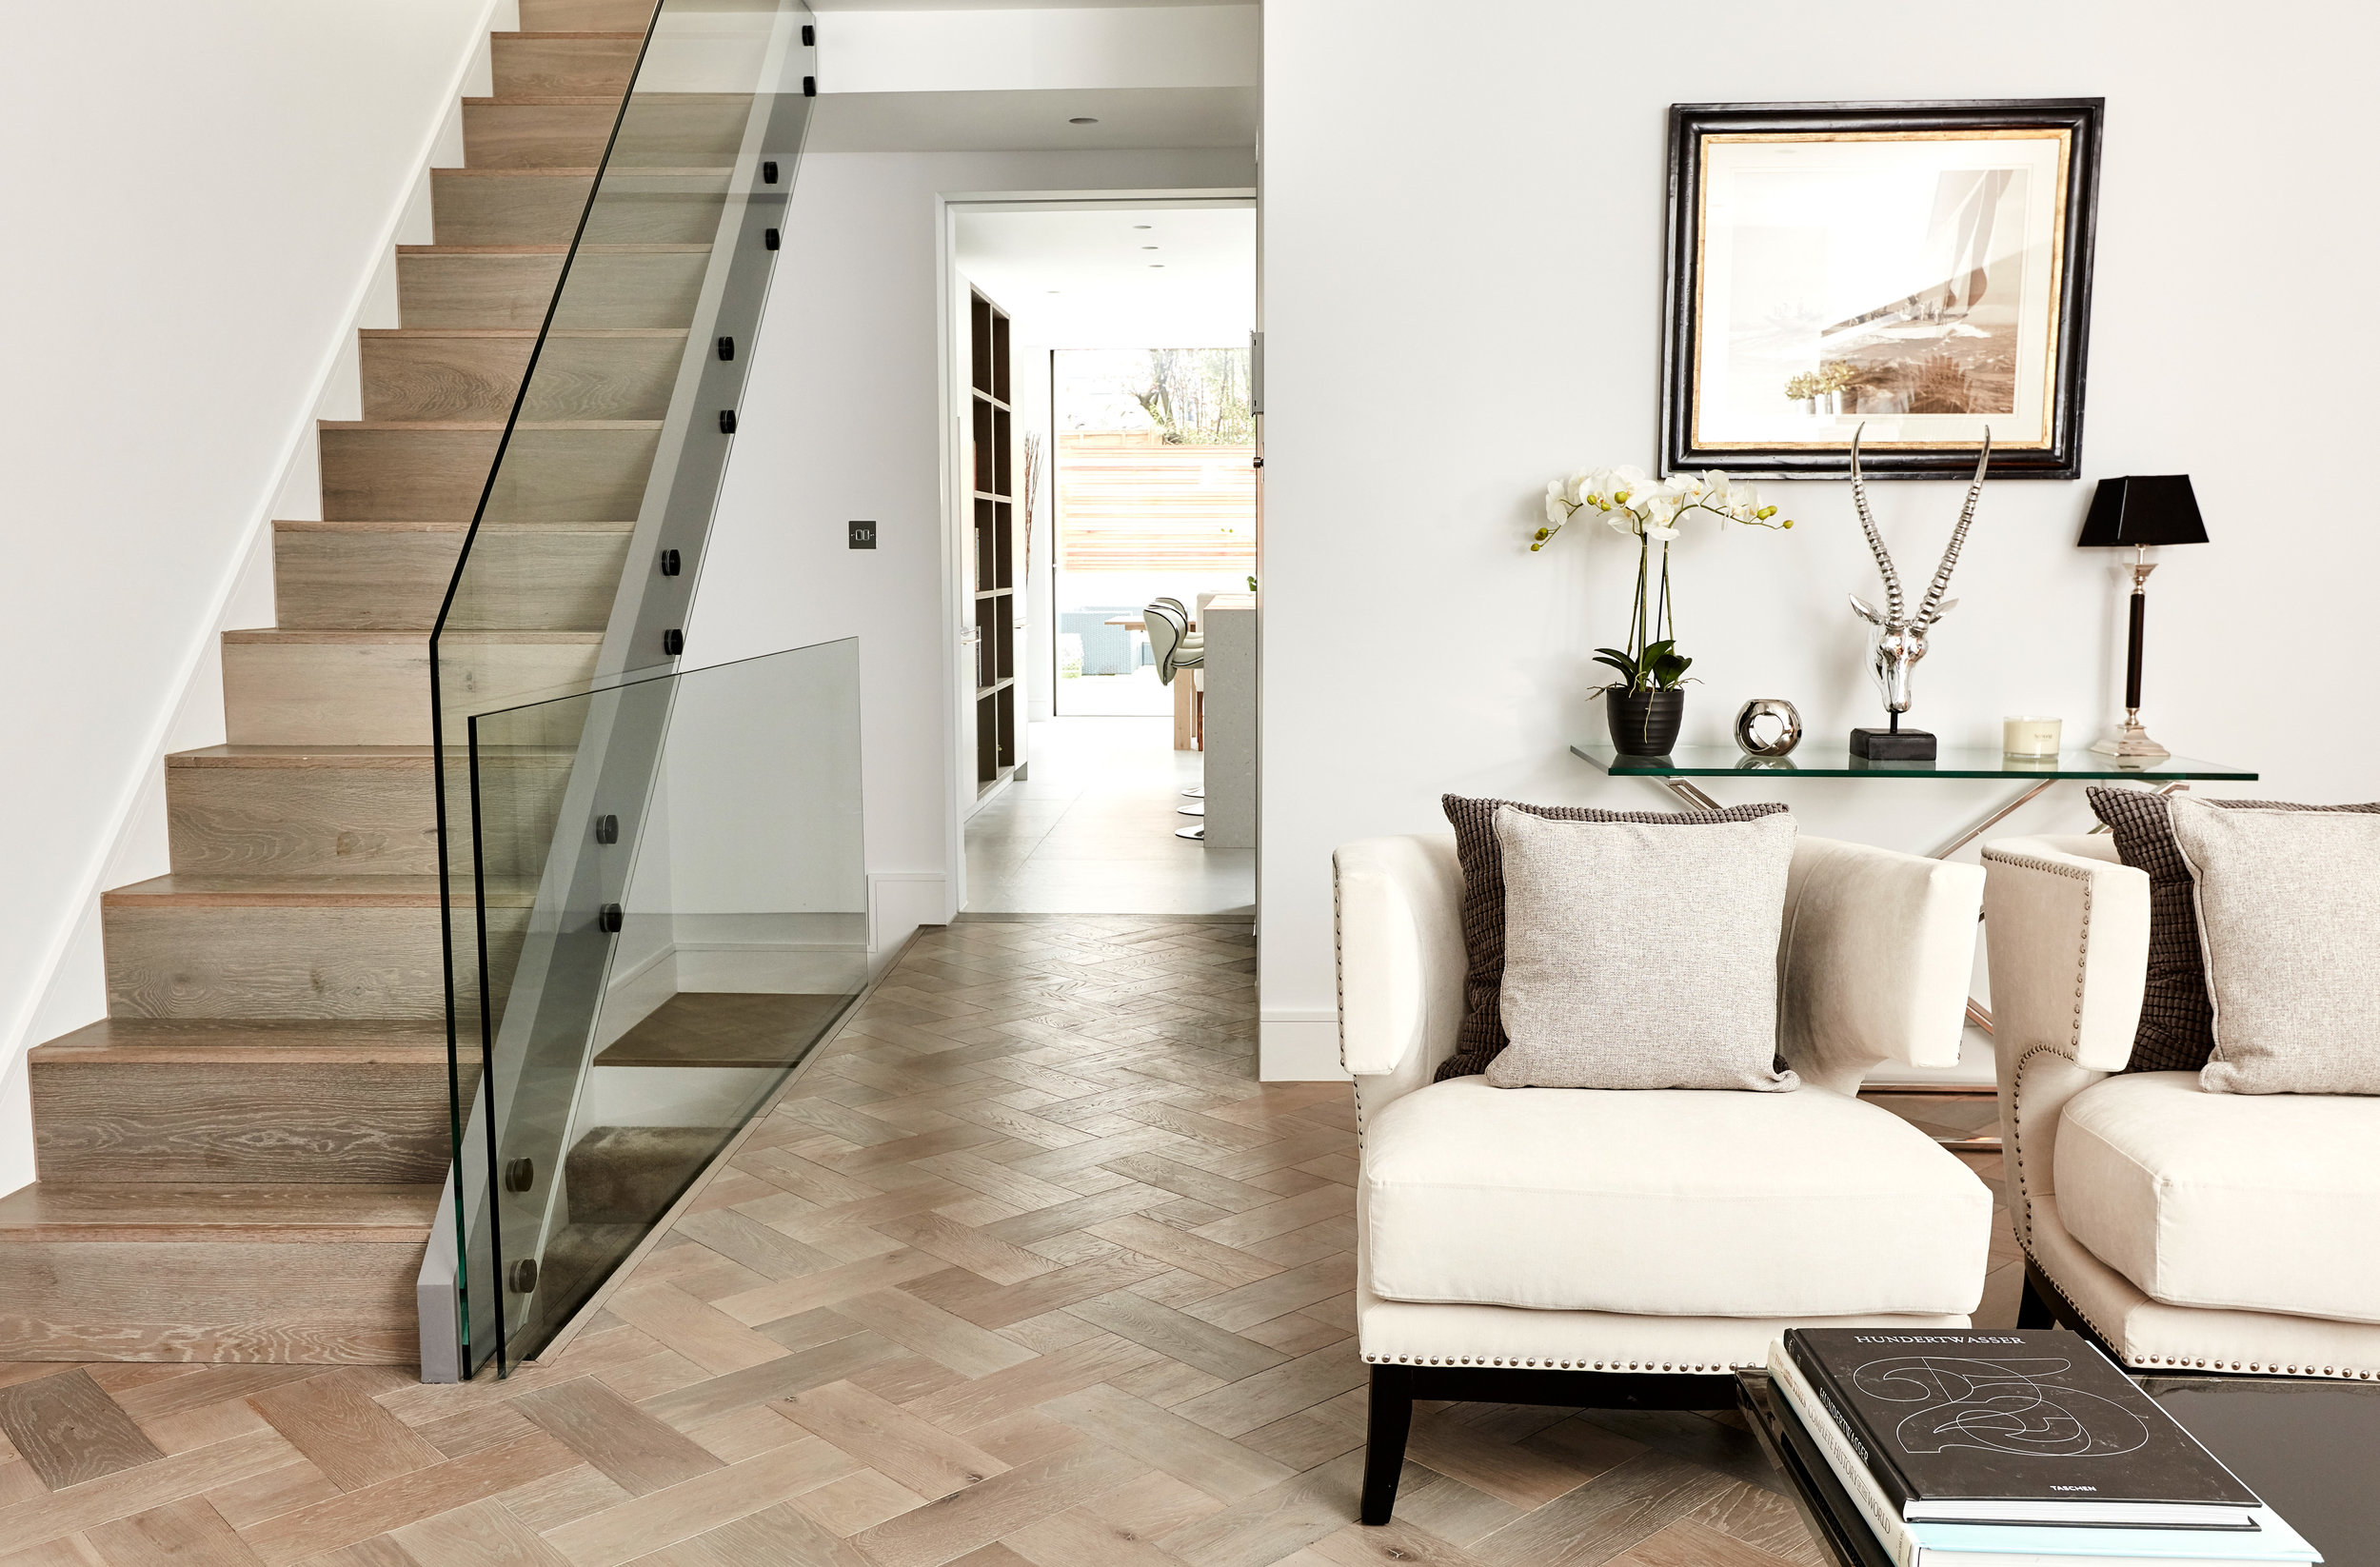 Interior_photography_living_room_stairs.jpg